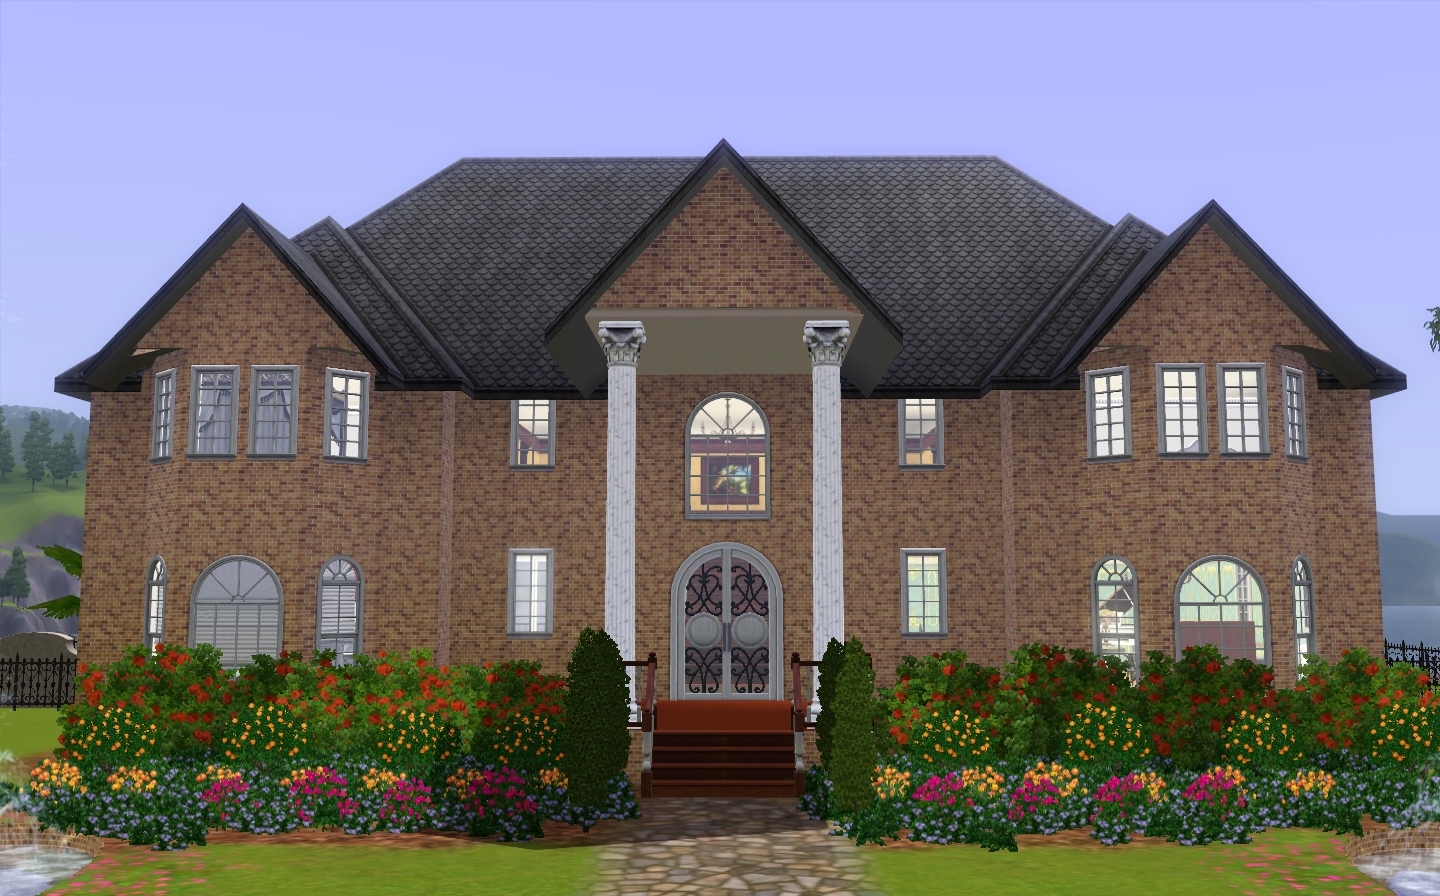 20 perfect images the sims 3 houses house plans 41361 for Classic house sims 3